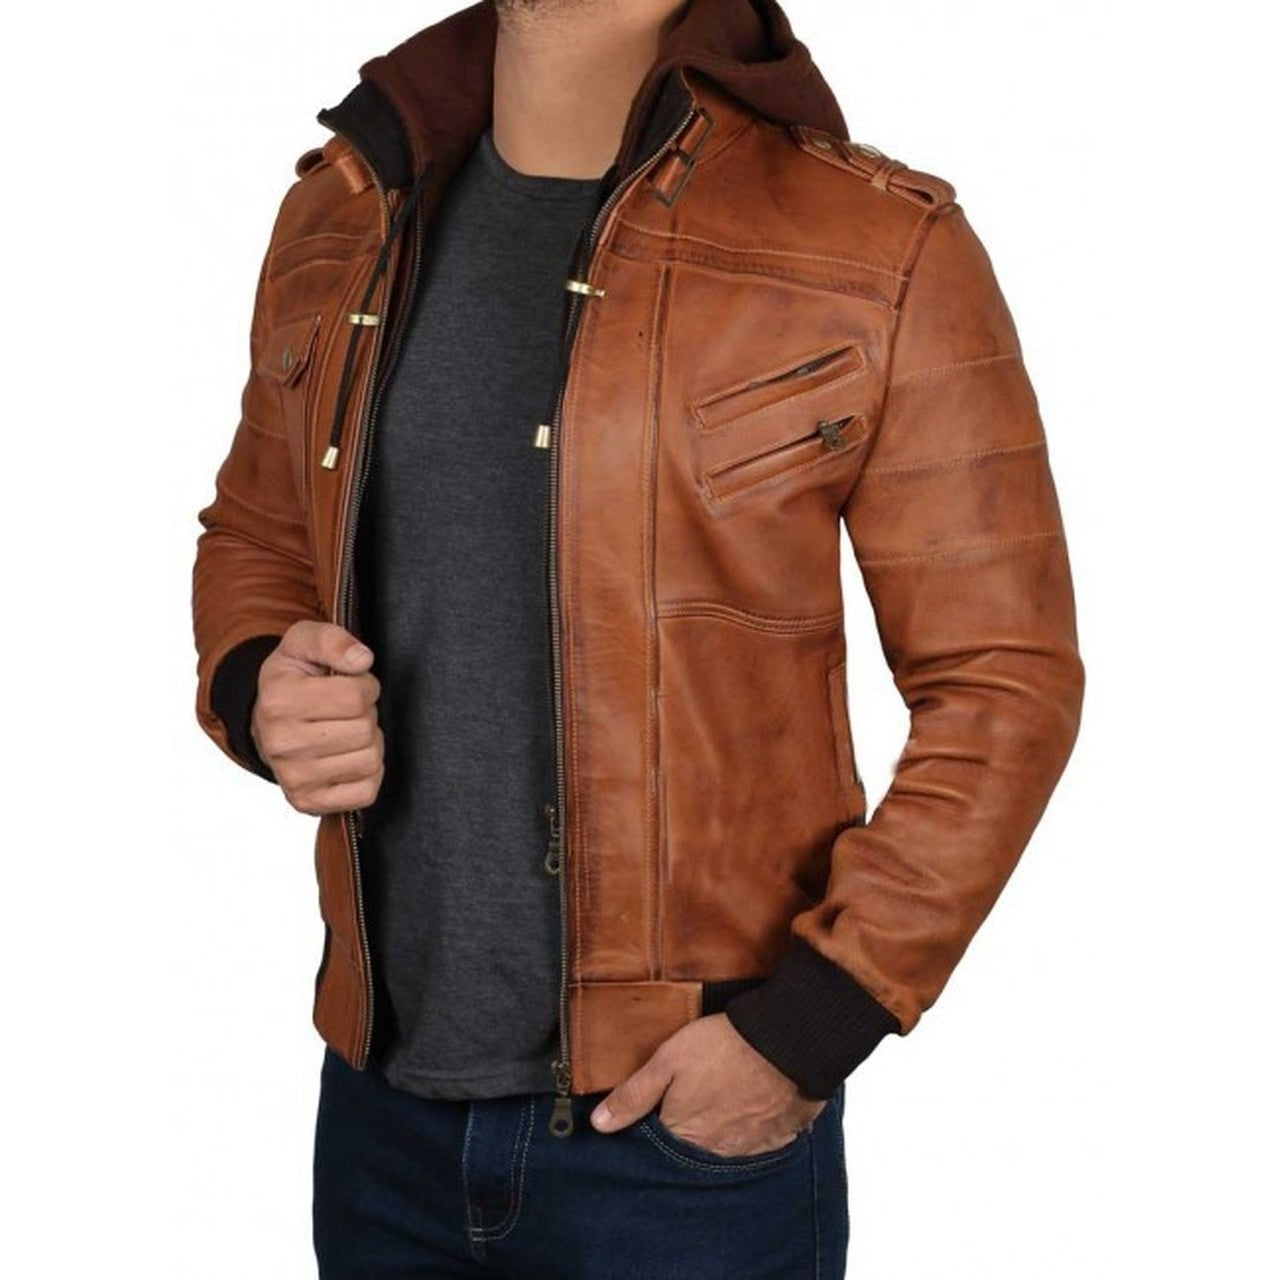 Brown Hooded Leather Jacket for Men - Leather Jacket